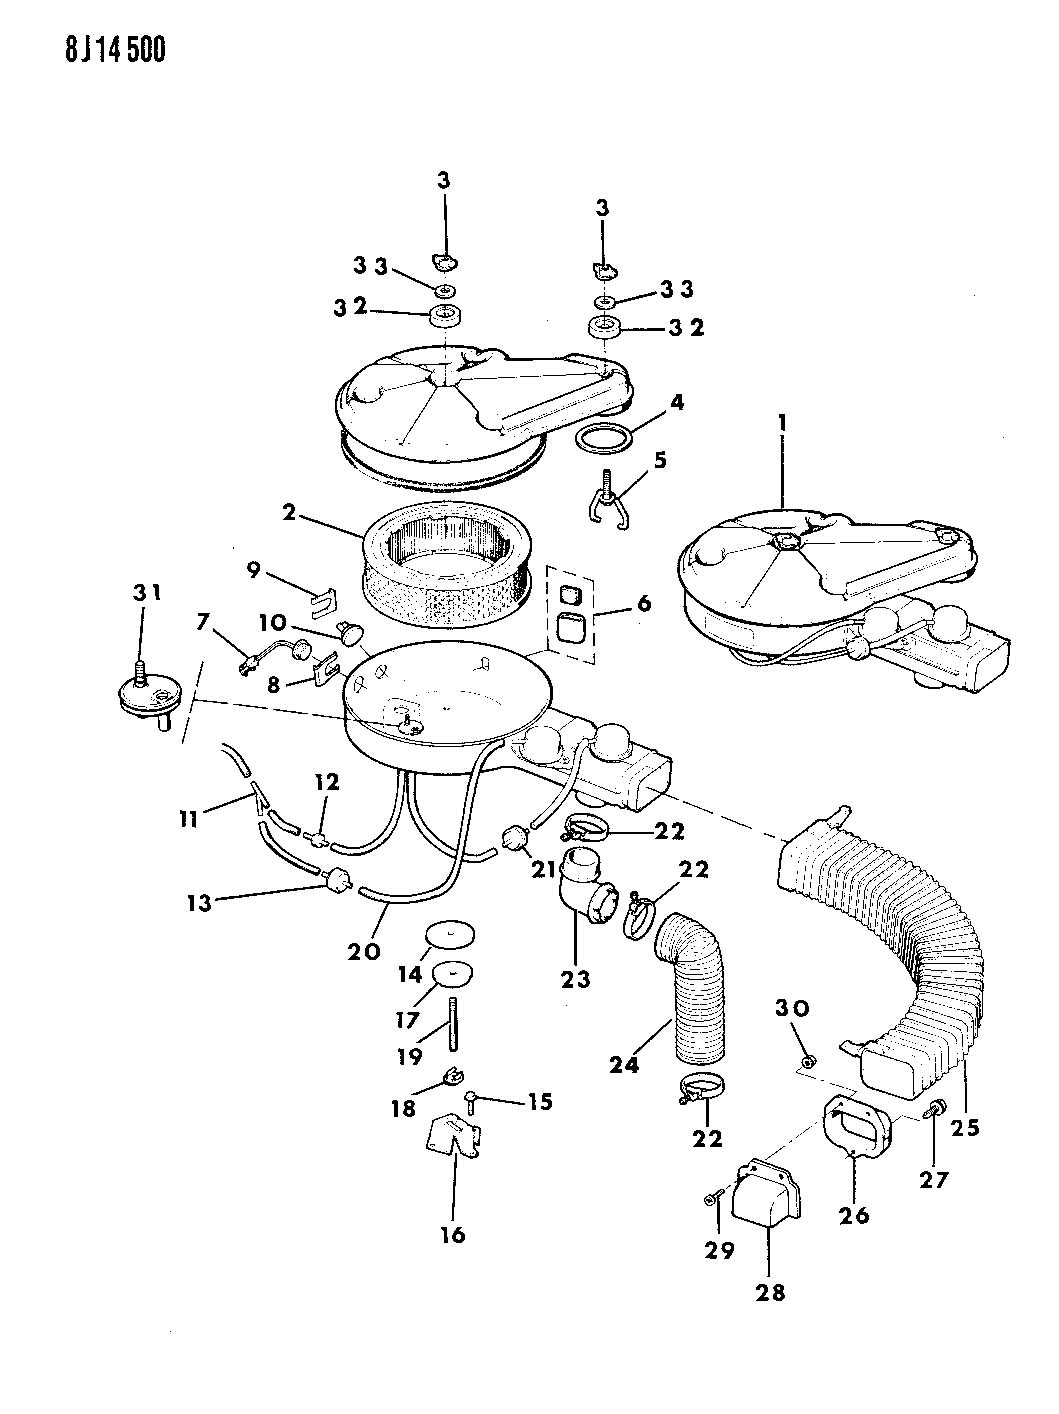 1989 toyota corolla exhaust diagram